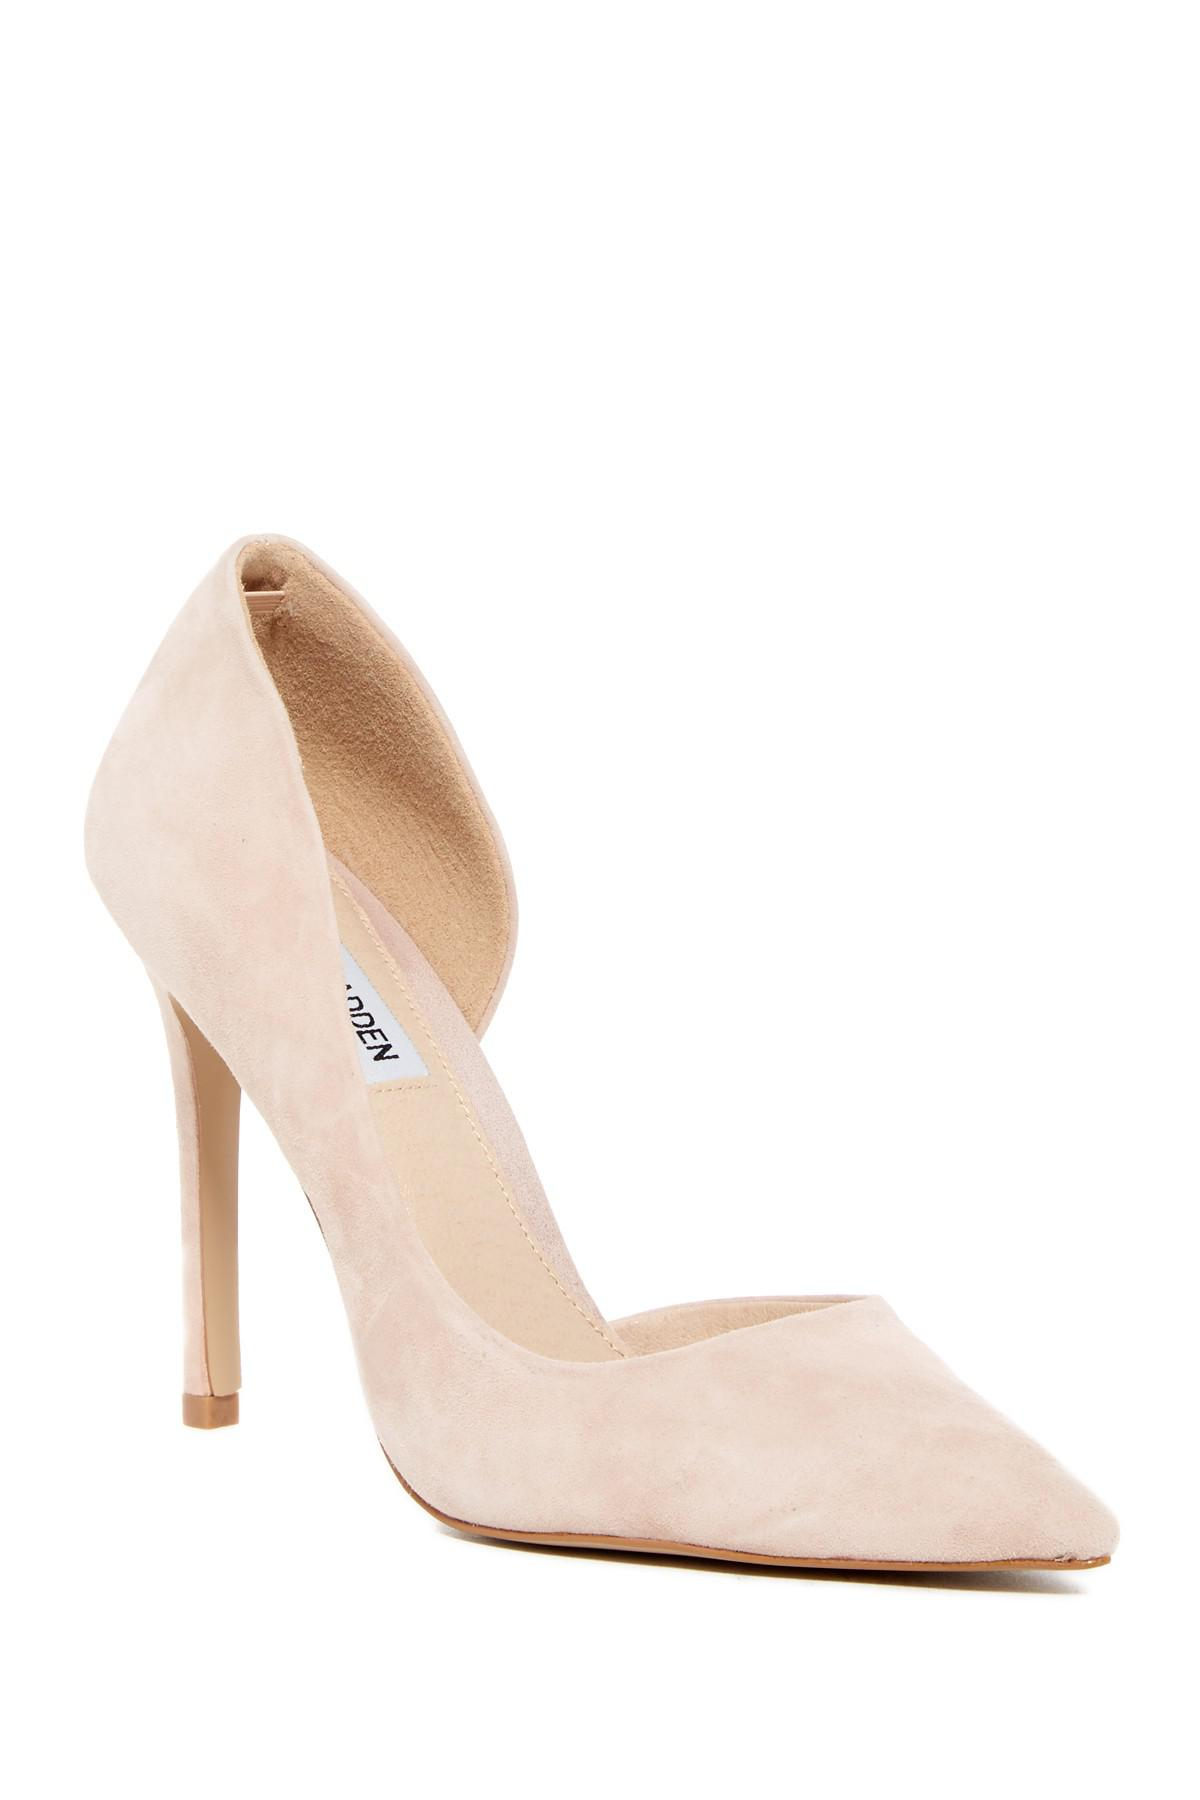 c0d027b938e Lyst - Steve Madden Felicity Suede D orsay Pump in Natural